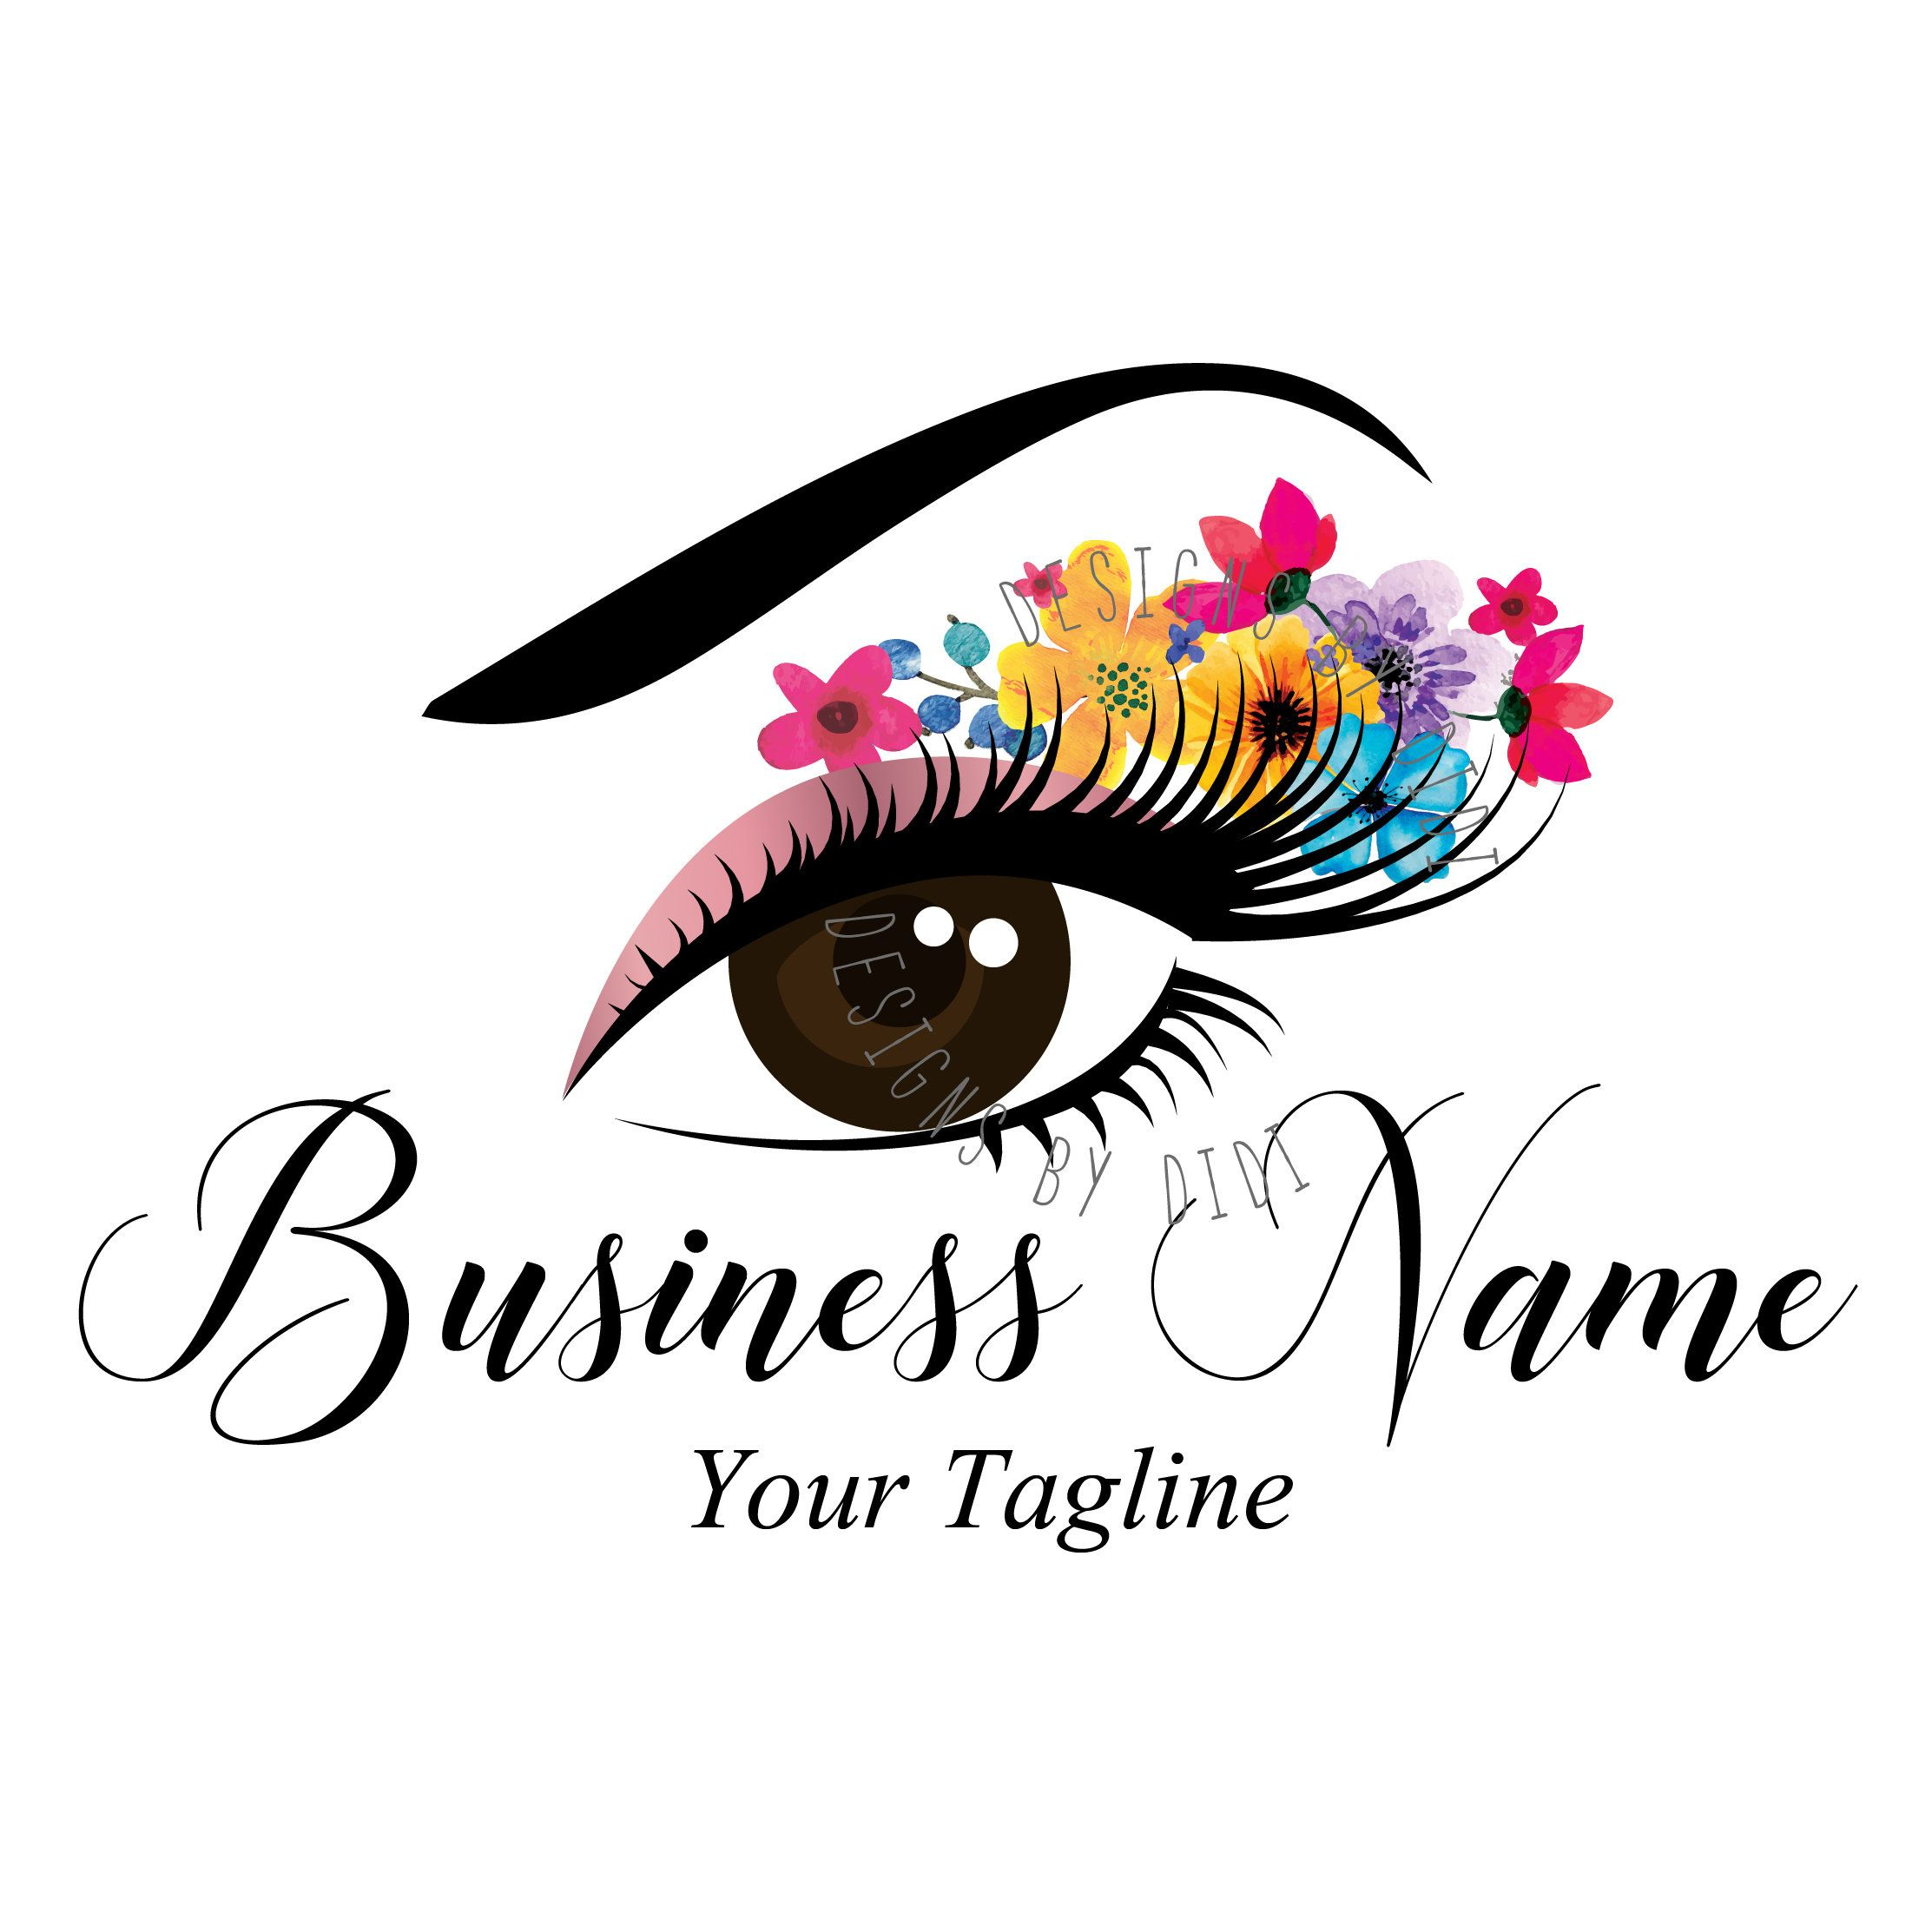 Custom logo, lash flowers logo, eye with flowers logo